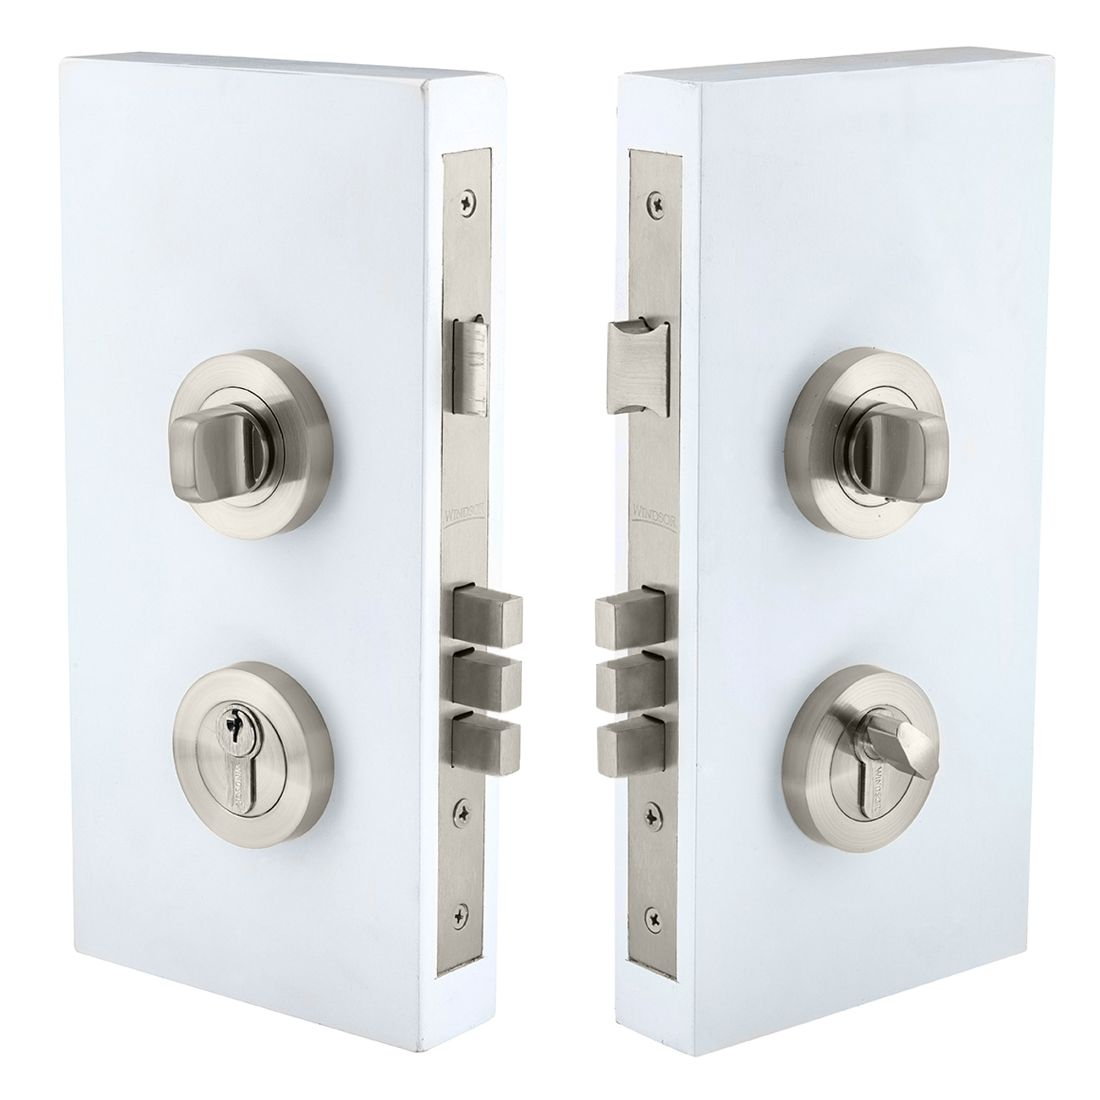 Pull Handle Double Turn Lock Round 60mm Brushed Nickel